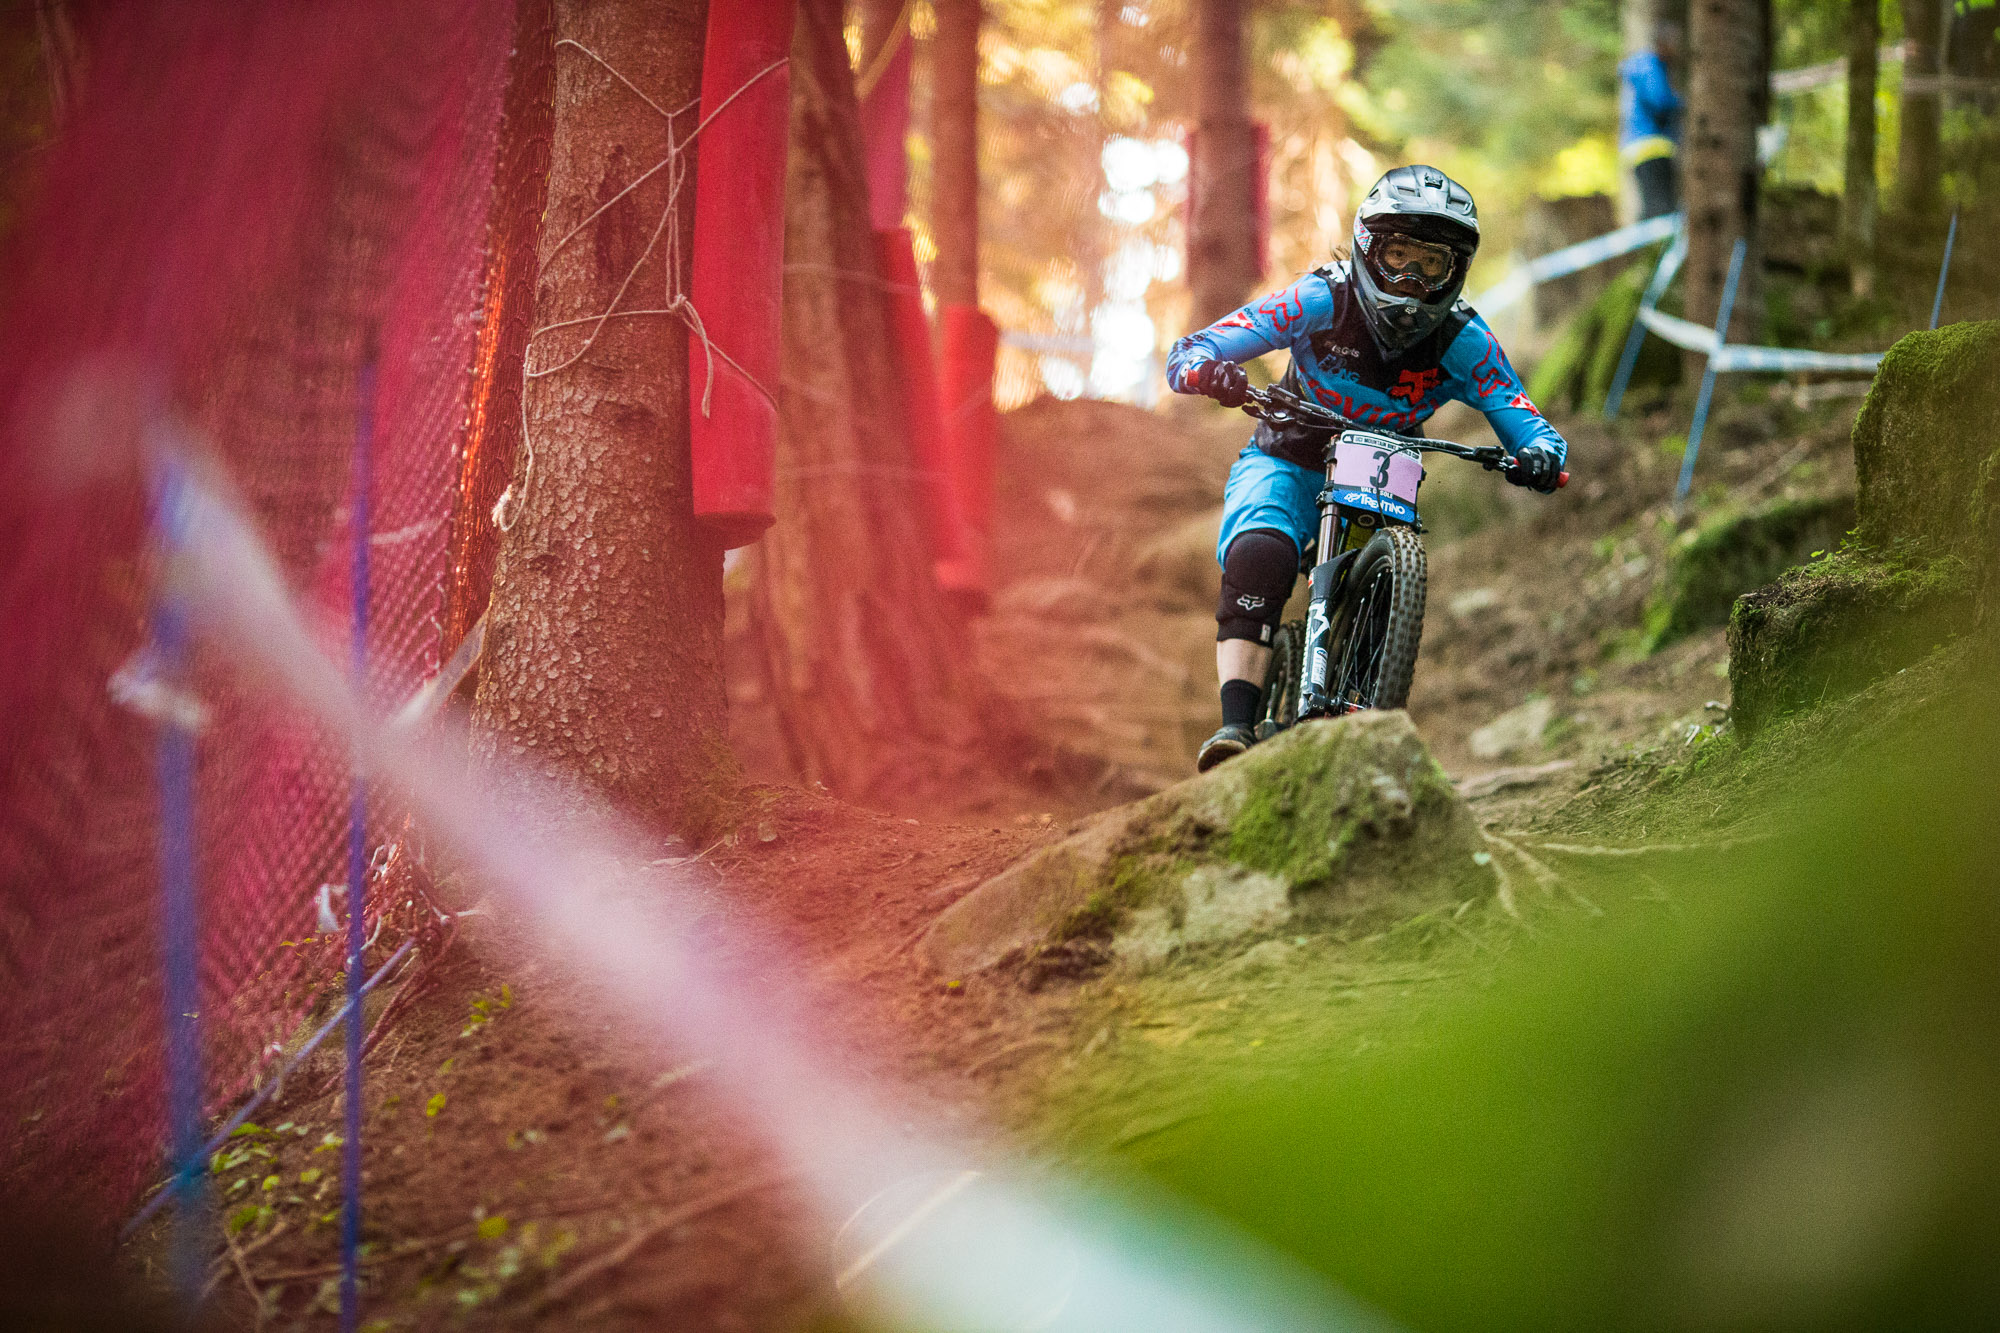 World Cup Val di Sole 2015